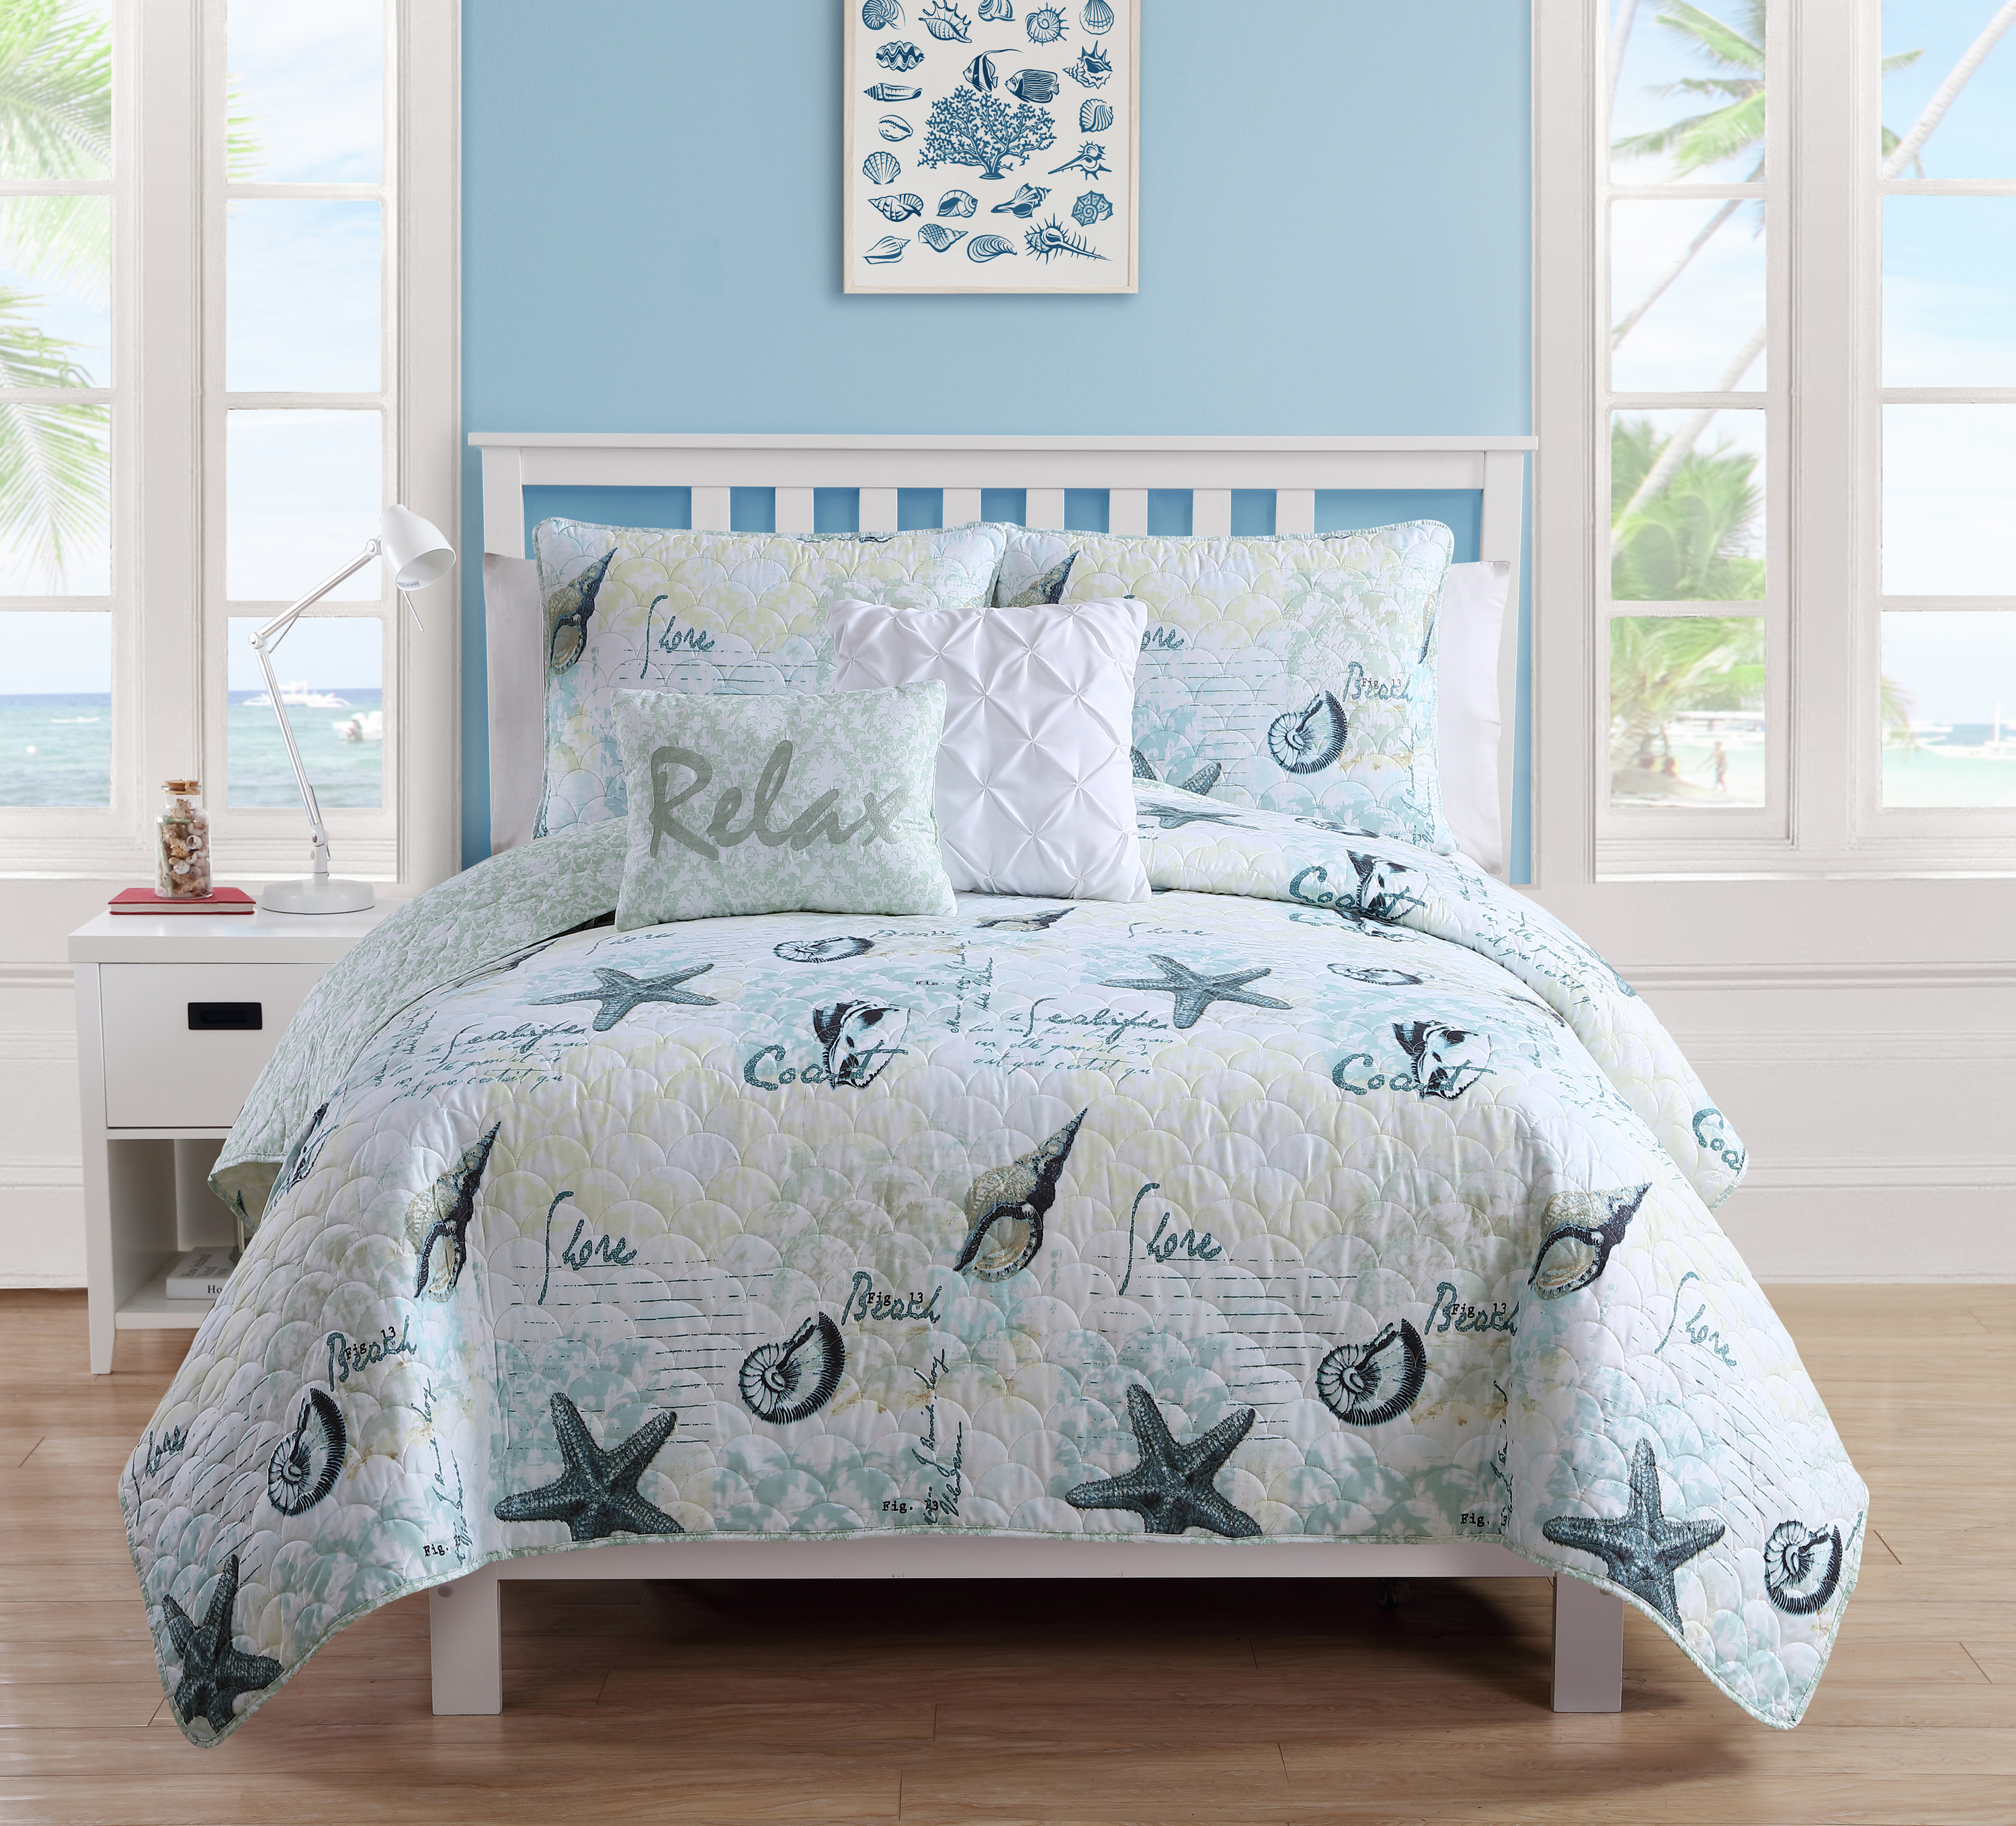 VCNY Home Blue Shore Life 5 Piece Bedding Quilt Set, Shams and Decorative Pillows Included